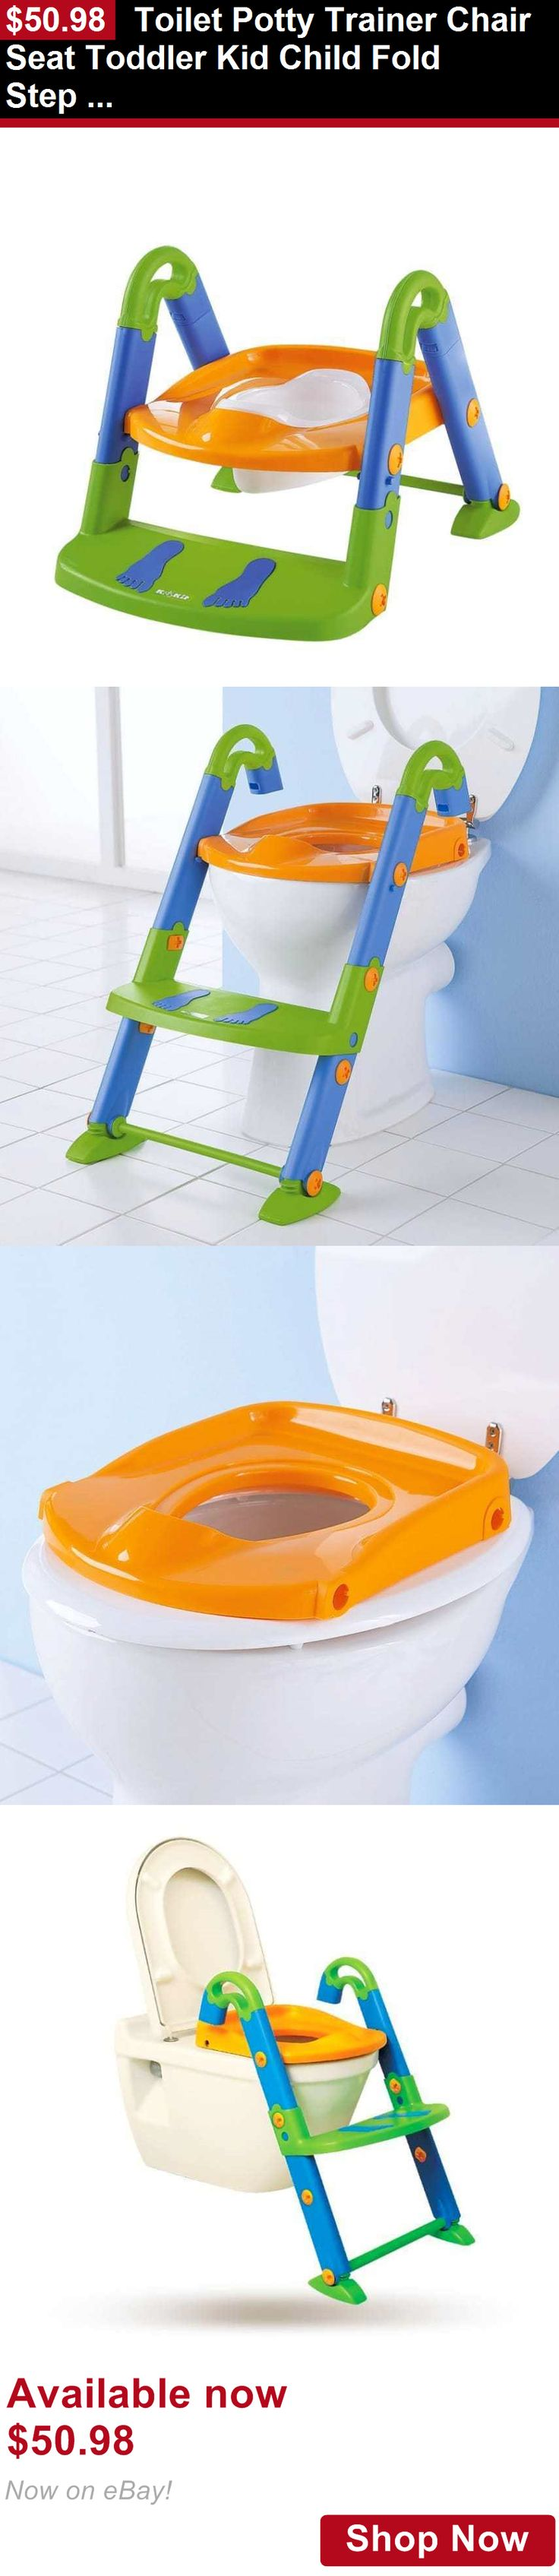 Potty Training: Toilet Potty Trainer Chair Seat Toddler Kid Child Fold Step Up Ladder Padded BUY IT NOW ONLY: $50.98